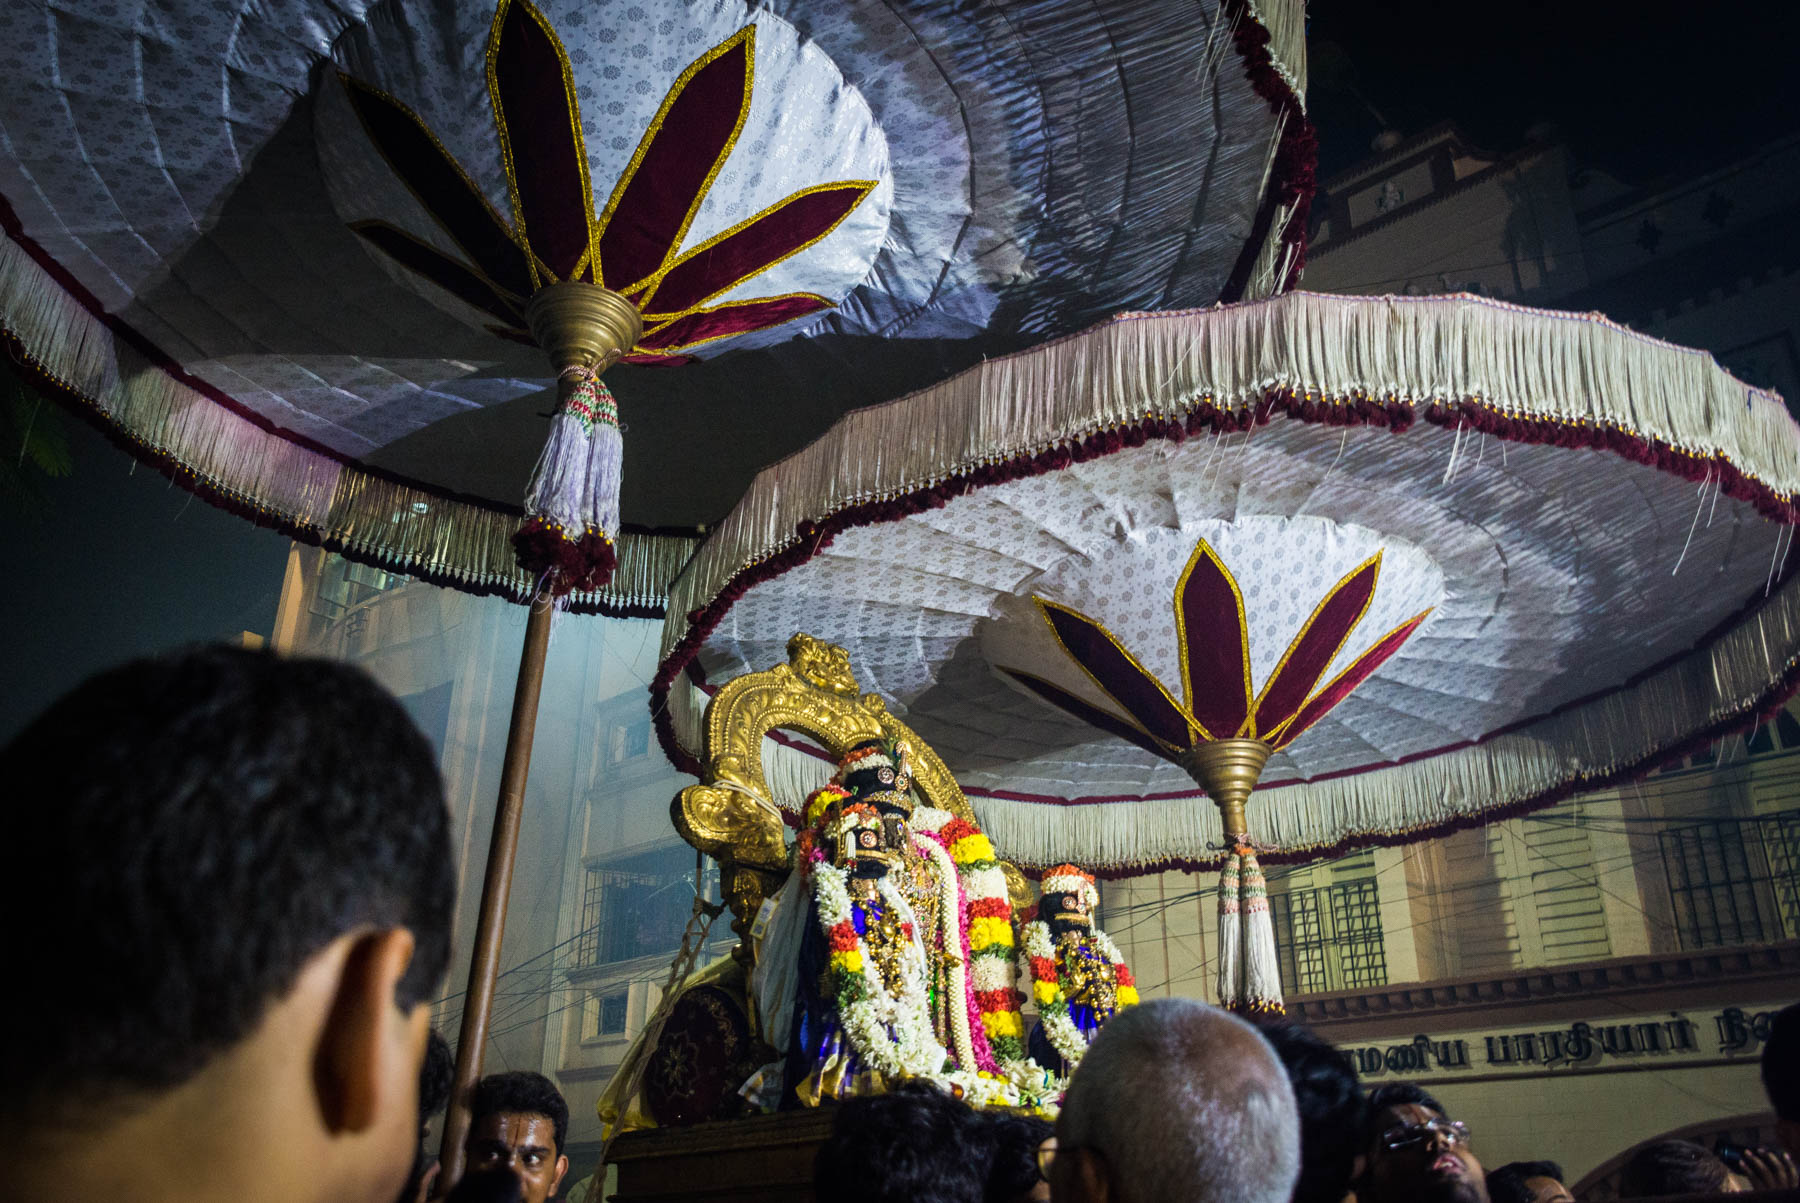 The statue of the god Parthasarathy while celebrating Diwali in Chennai, India - Lost With Purpose